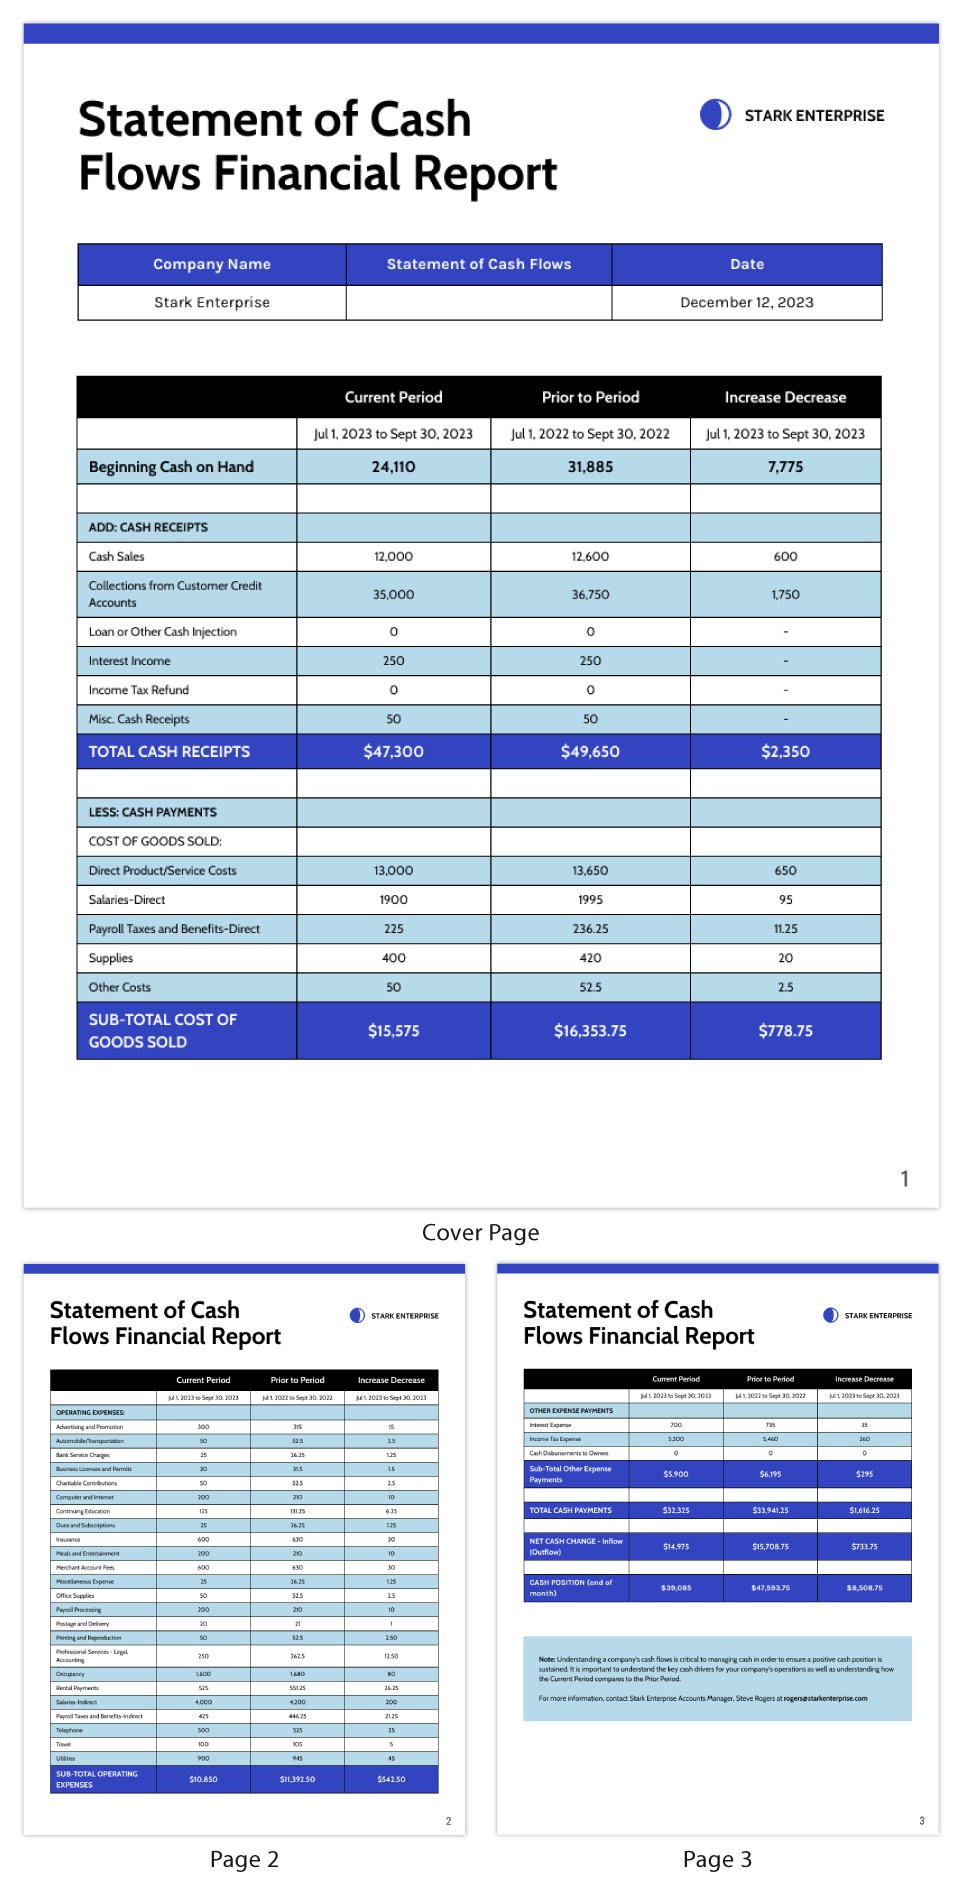 Statement of Cash Flows Financial Report Template